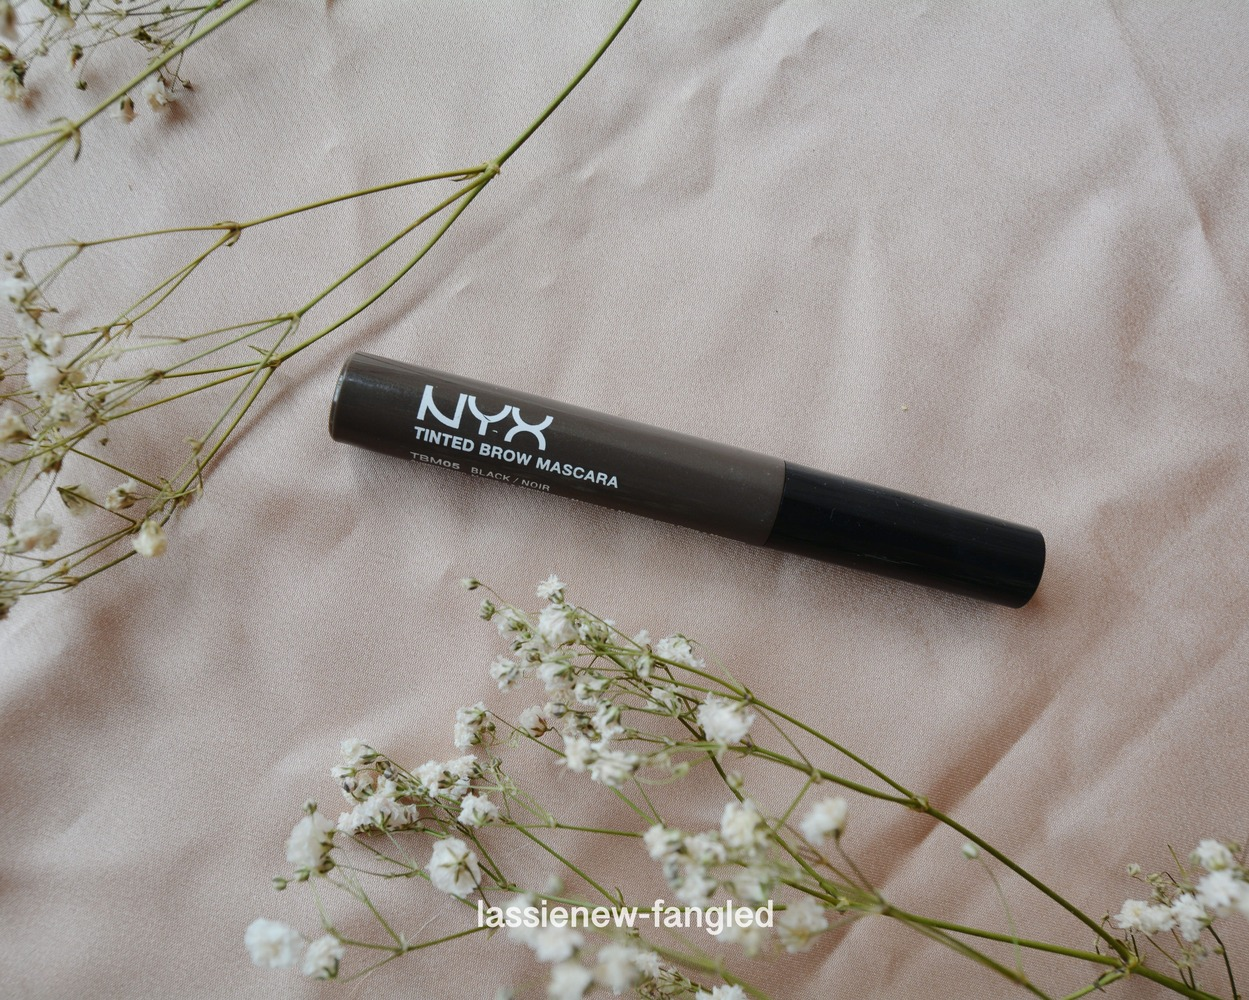 review NYX Tinted Brow Mascara, NYX Tinted Brow Mascara, NYX Tinted Brow Mascara review , NYX Tinted Brow Mascara indonesia,Tinted Brow Mascara, Broe Mascara